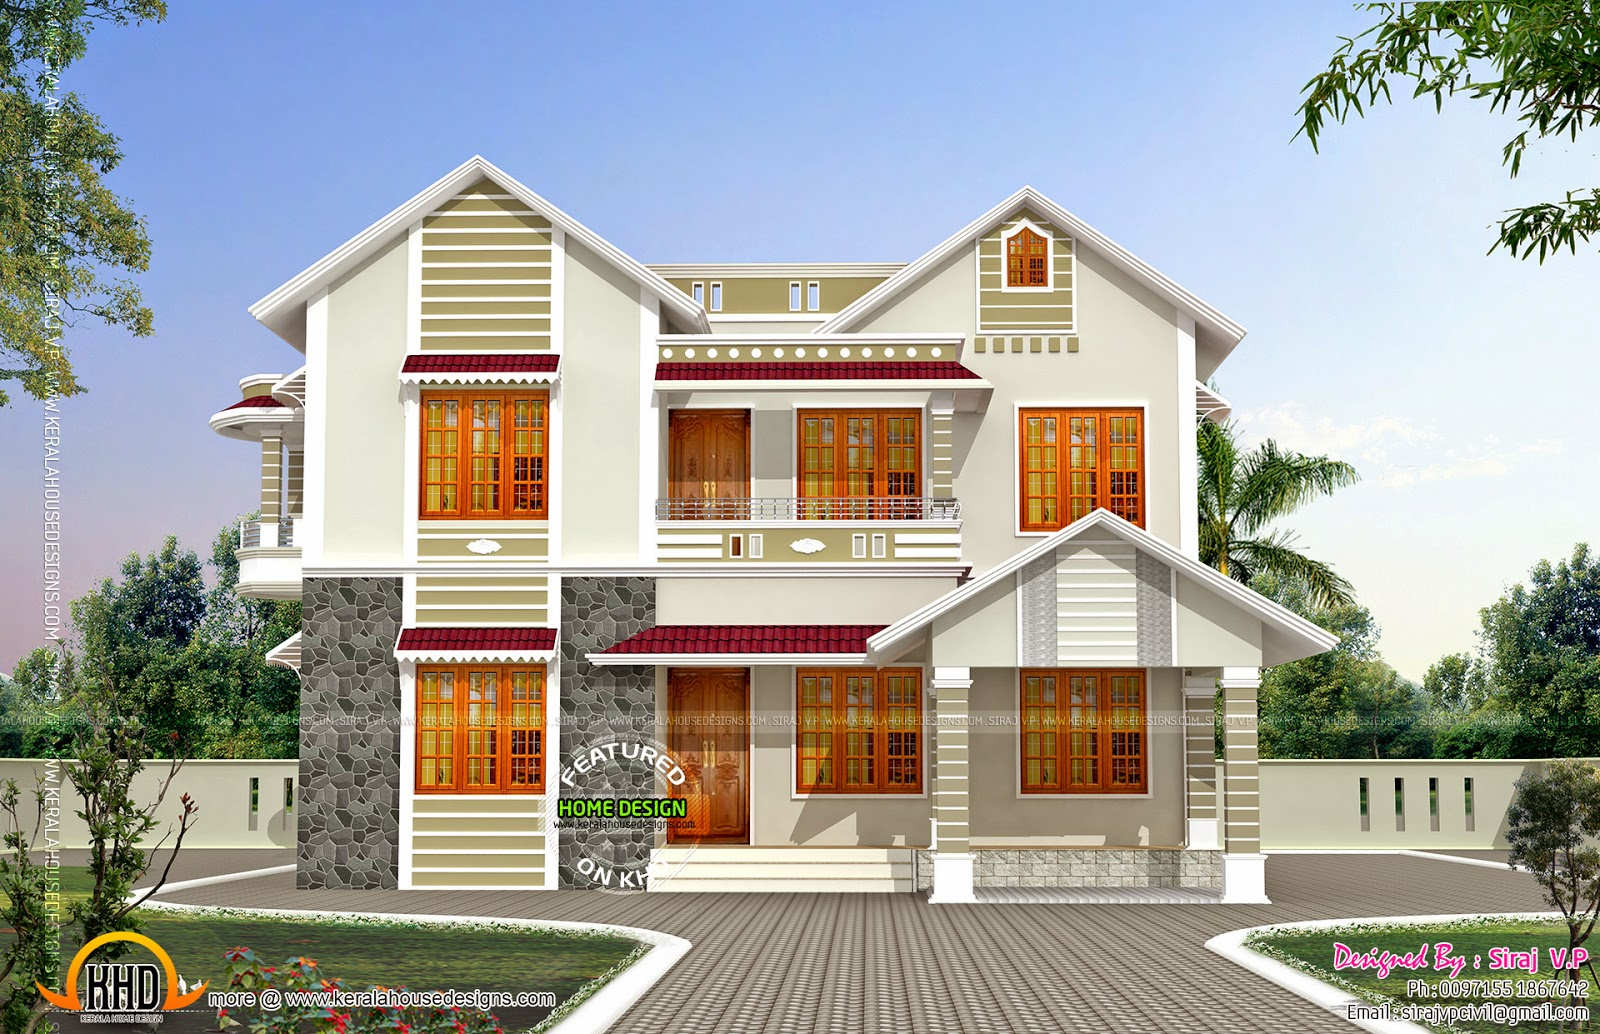 Front and side elevation of house kerala home design and floor plans - Design of home ...